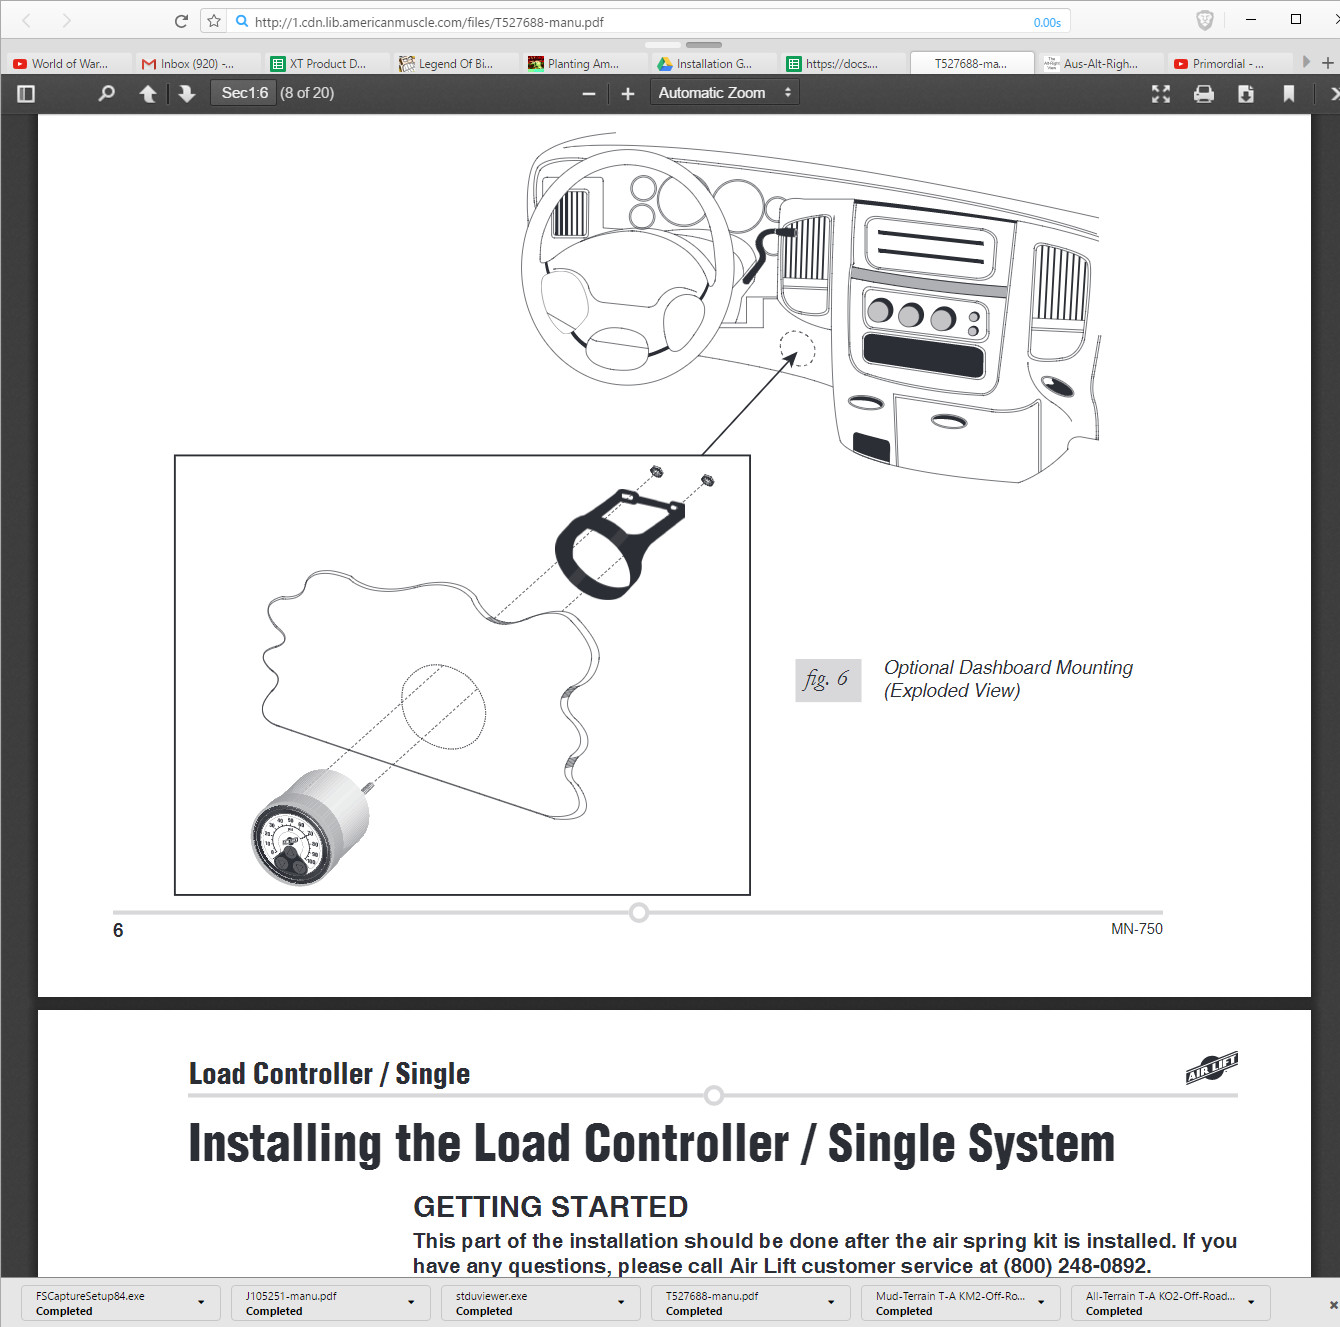 How to Install Air Lift LoadController Single Onboard Air System w Air Lift Wiring Diagram on peterbilt air line diagram, air lift control panel, air lift compressor, air shock diagram, air lift assembly, air lift remote control, lift axle plumbing diagram, air lift pump diagram, air bag system diagram, air lift valve, lift axle control diagram, air lift relay, air bag schematics, air lift warranty, air lift system, air ride diagram, compressor diagram, air suspension diagram, air lift piston, car lift diagram,